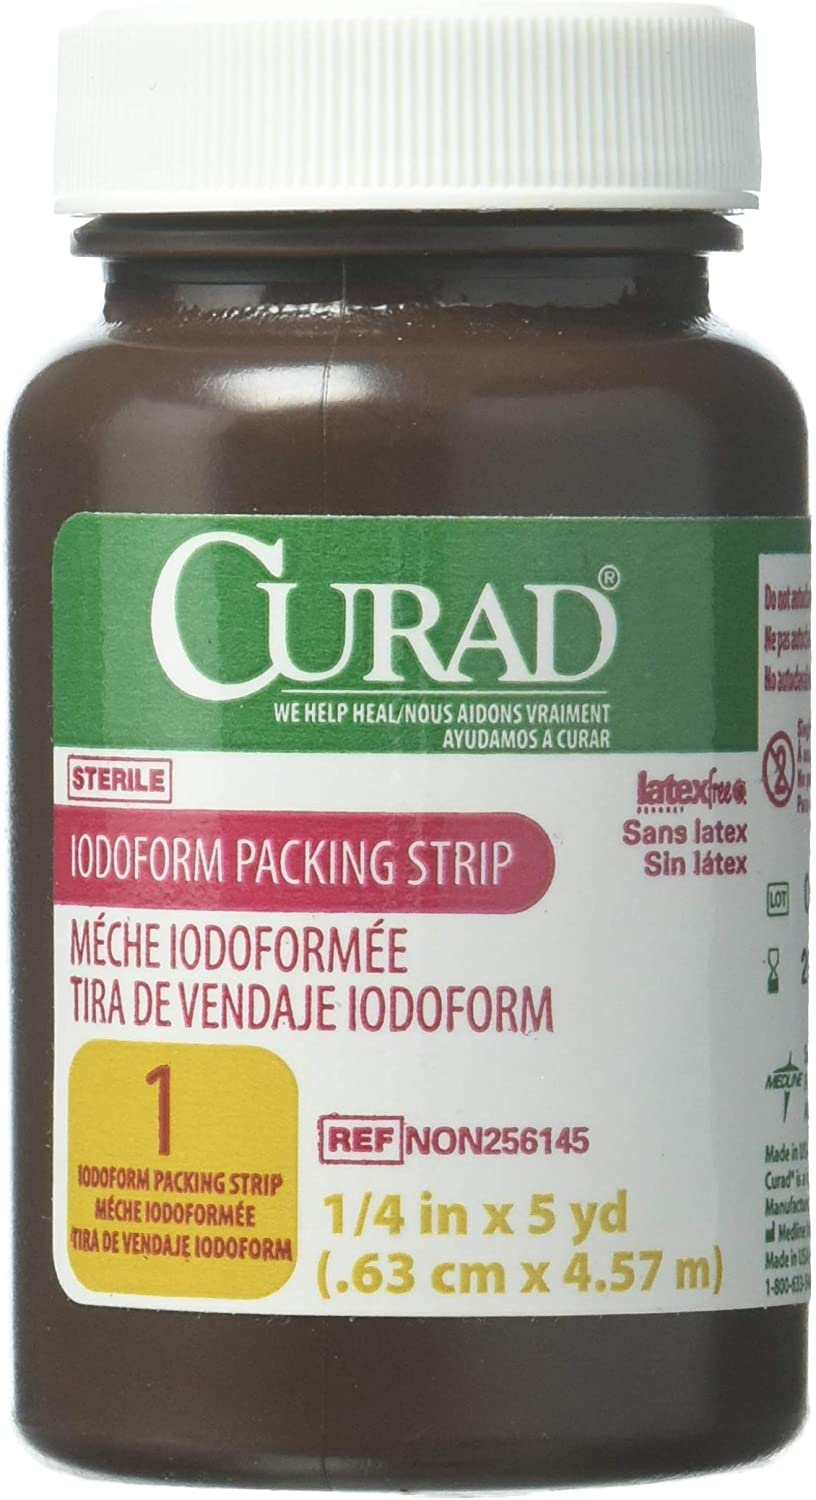 CURAD Sterile Iodoform Packing Strips.